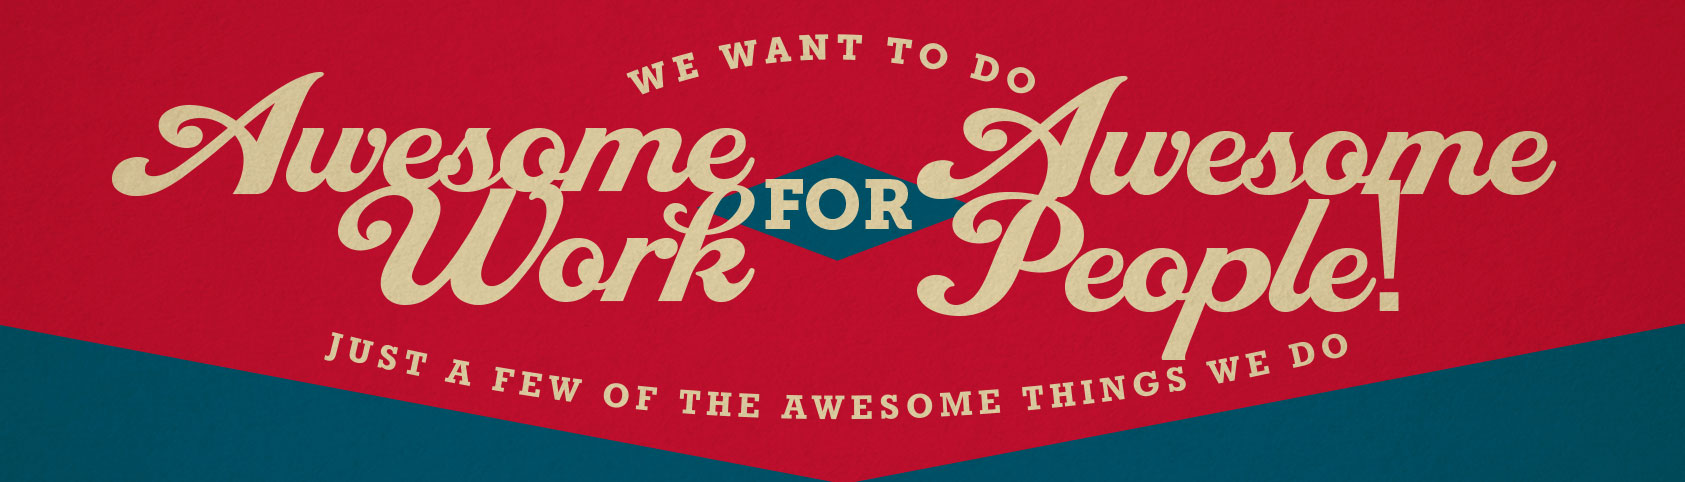 We Want To Do Awesome Work For Awesome People